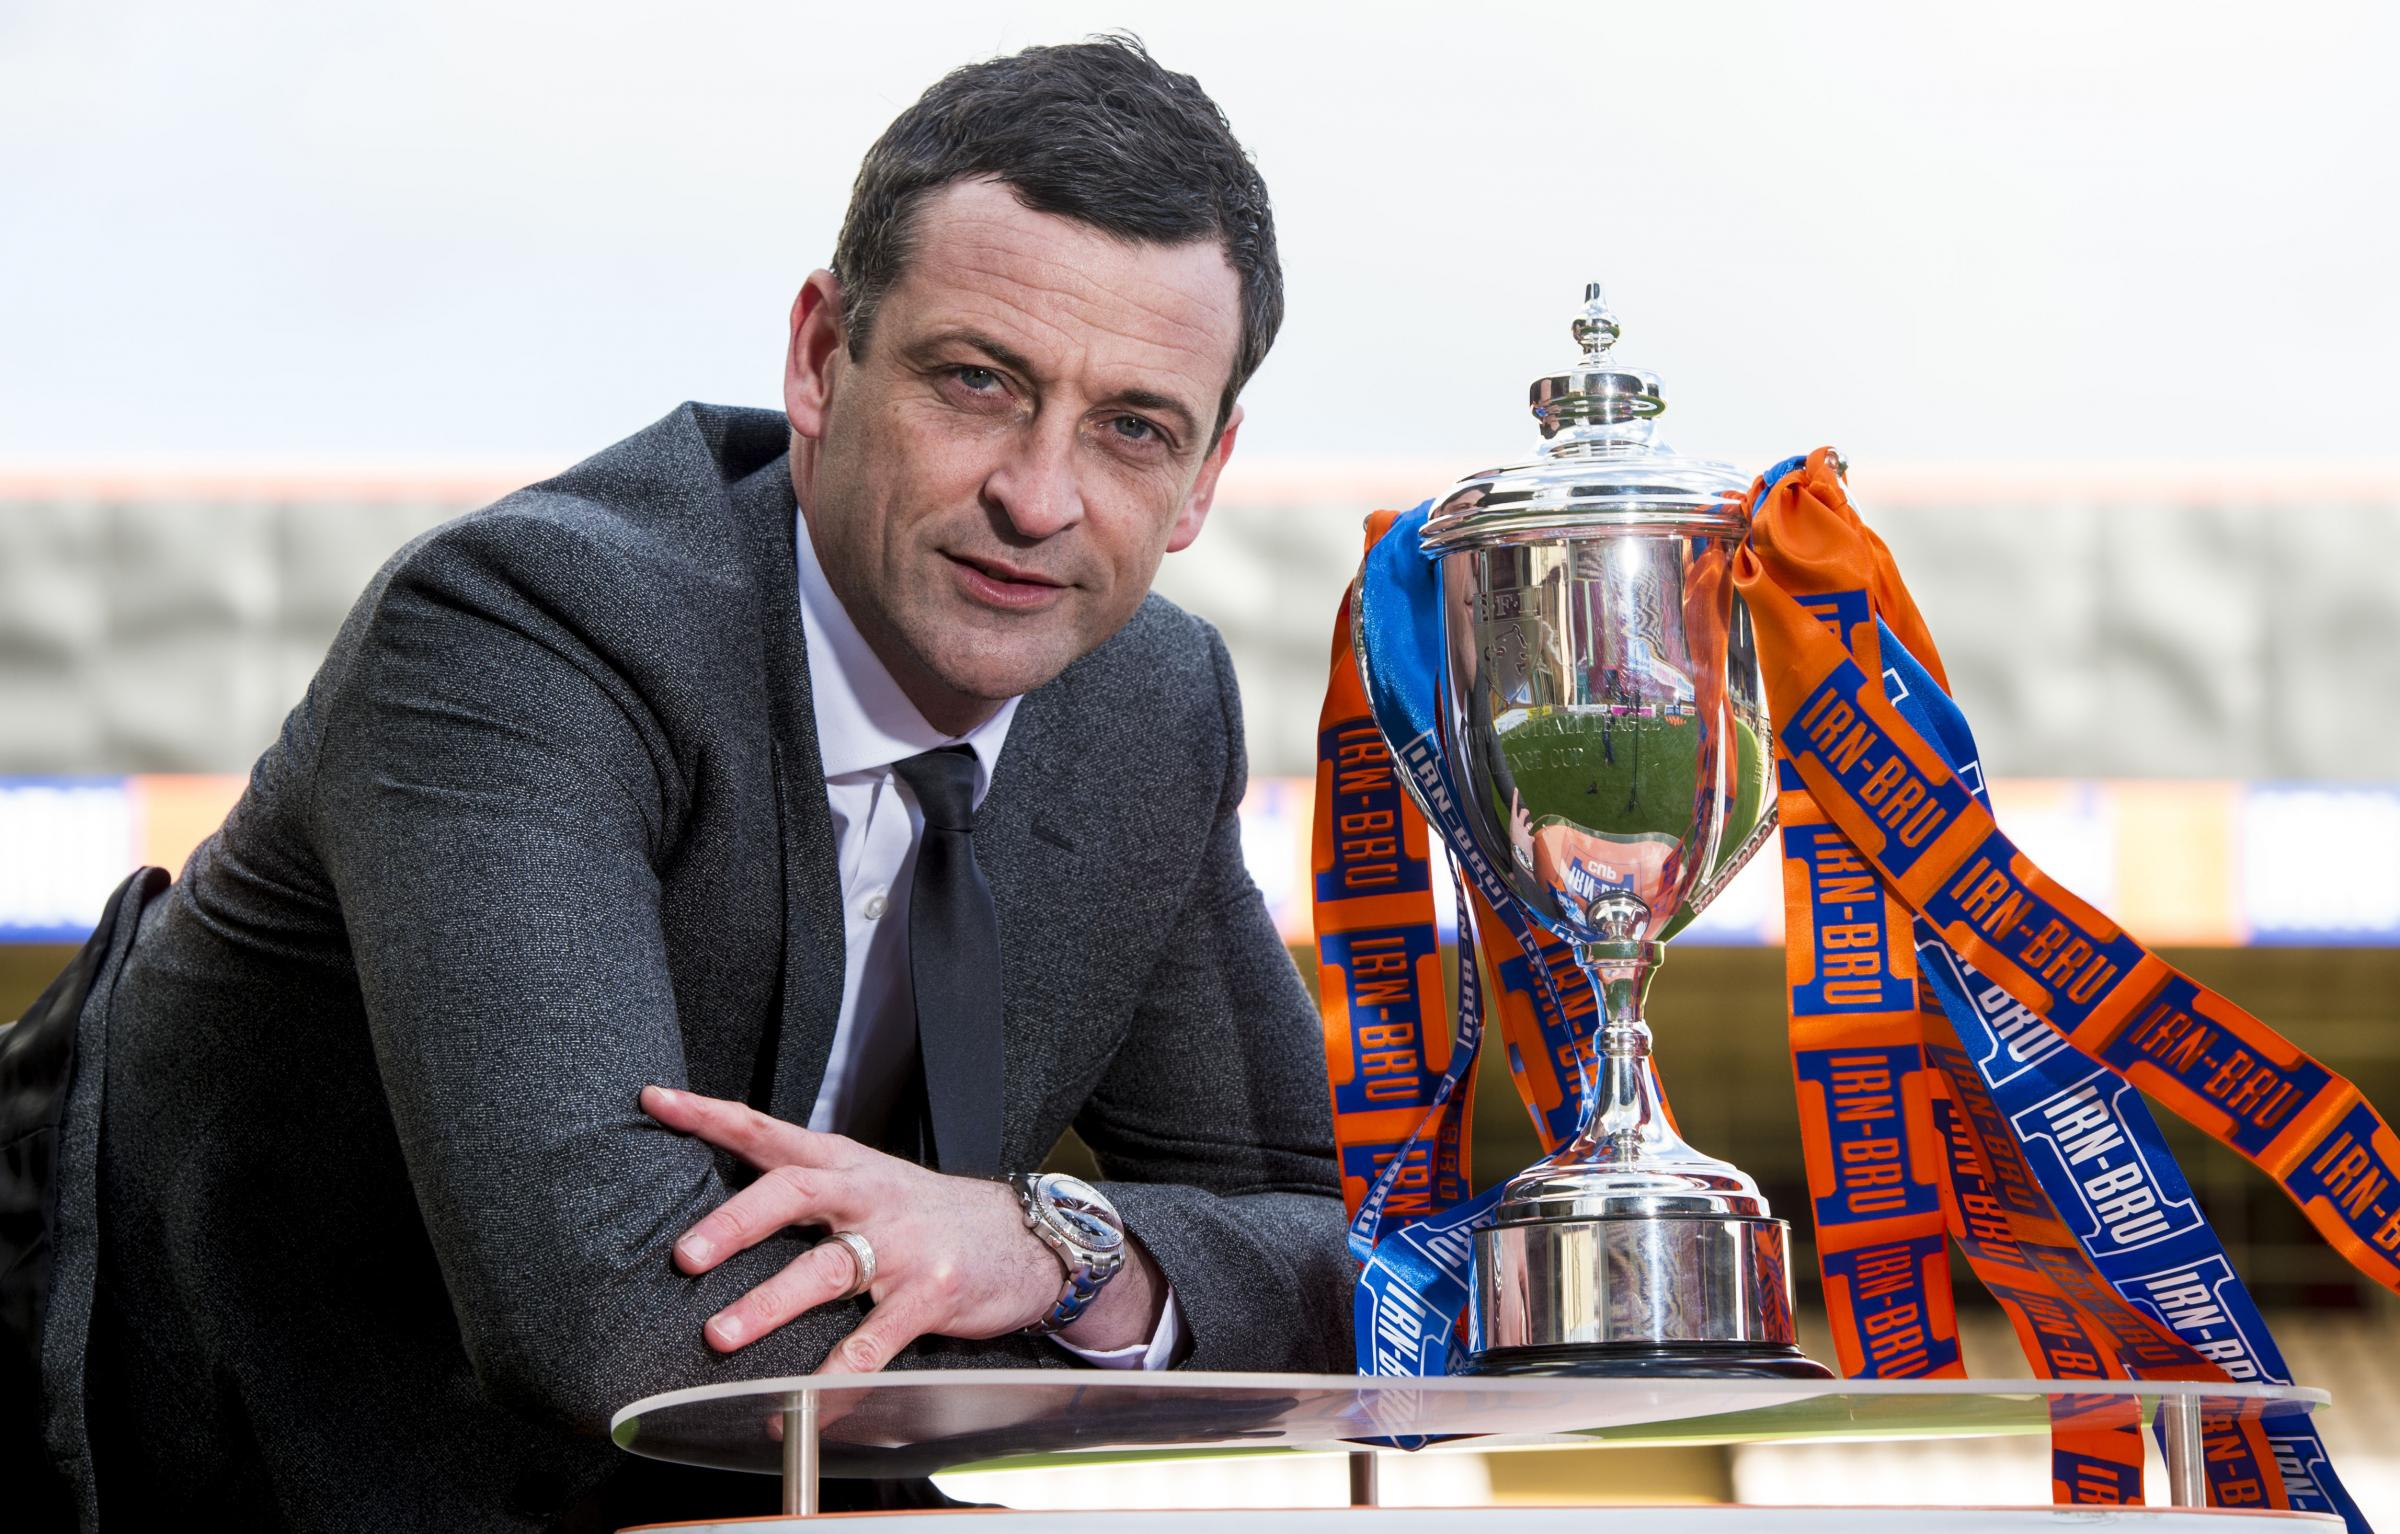 Jack Ross on Brendan Rodgers, why the Irn-Bru Cup matters, and giving something back to the St Mirren fans